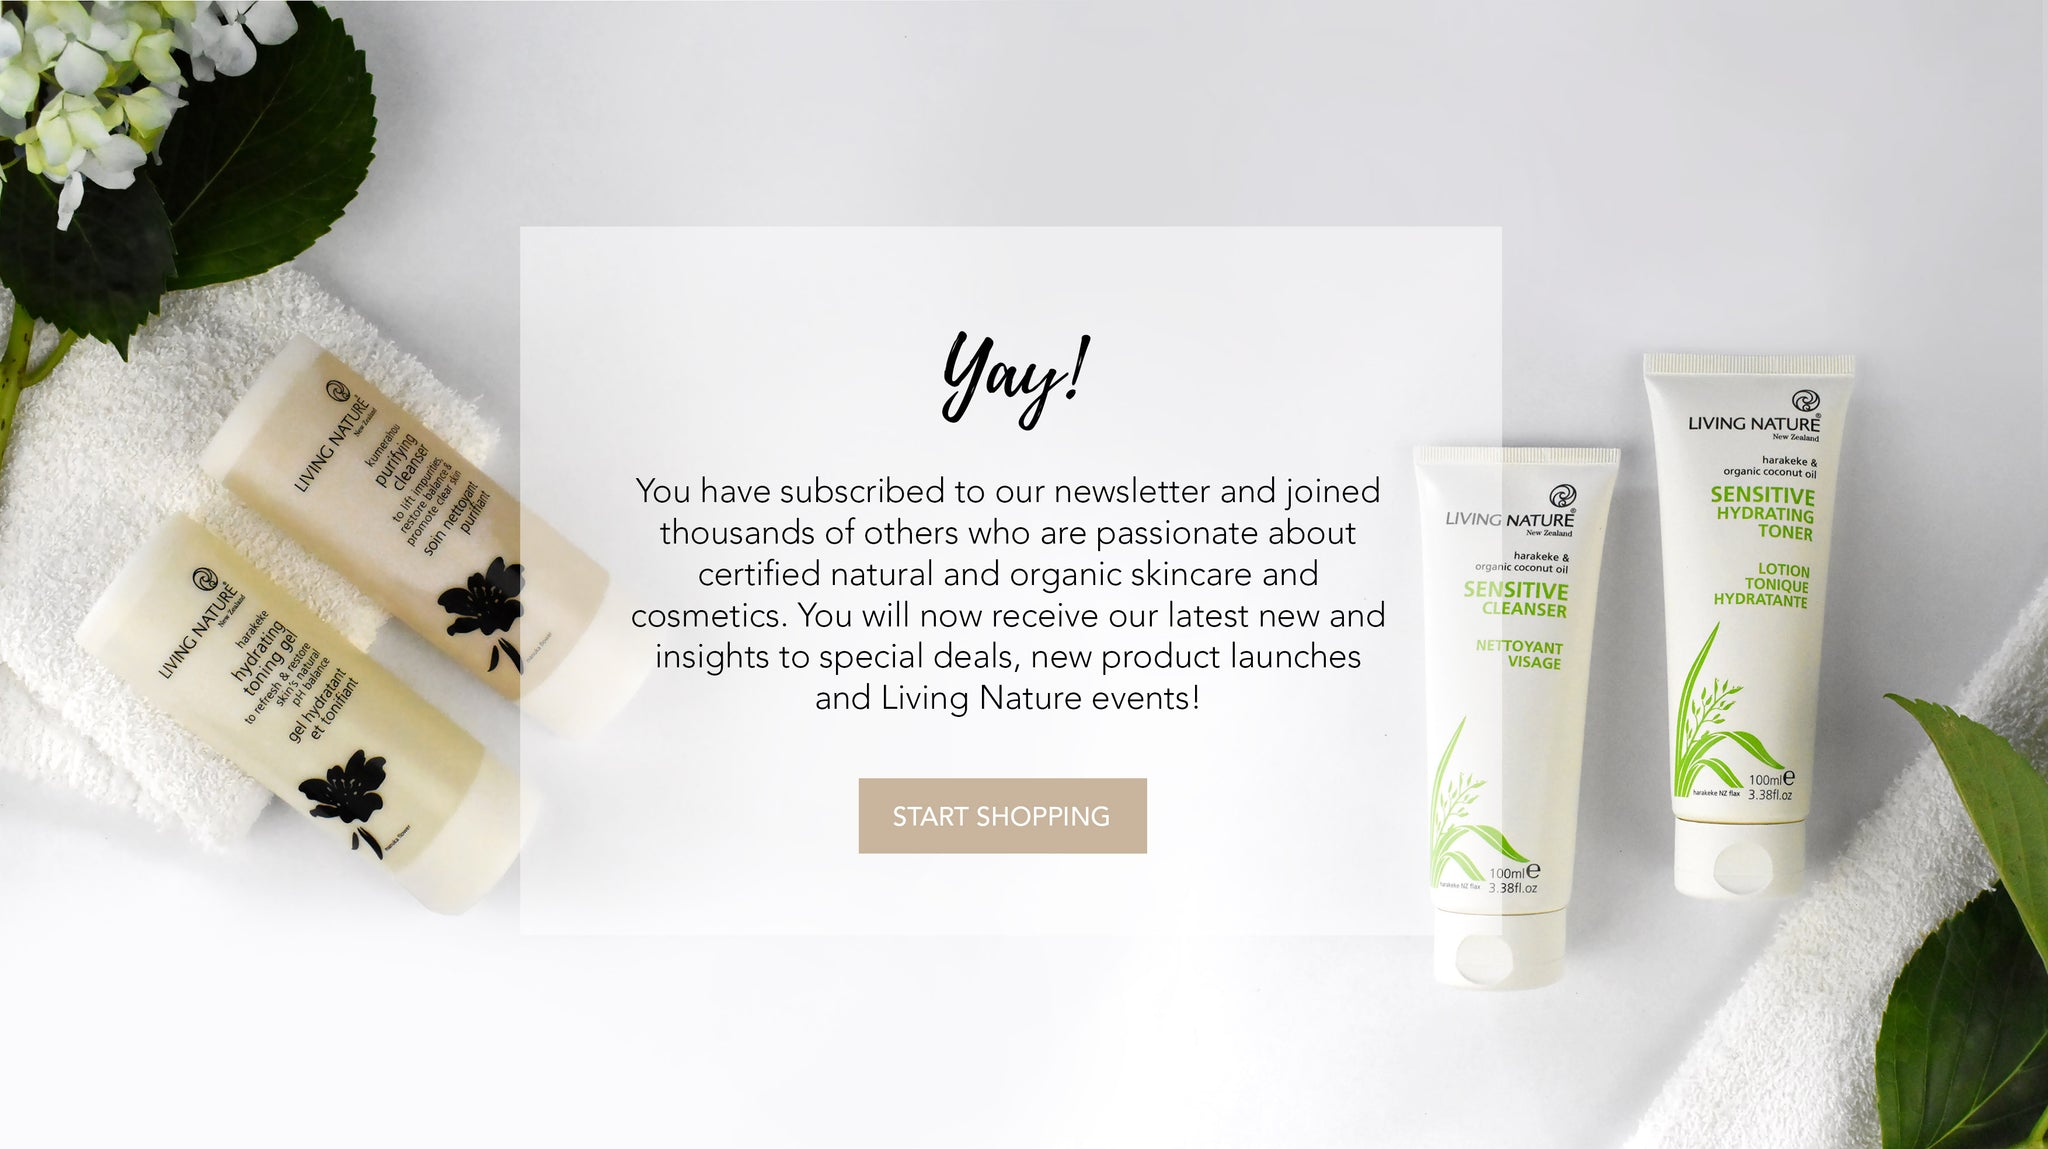 Living Nature - Certified Natural and Organic Skincare - Made in New Zealand